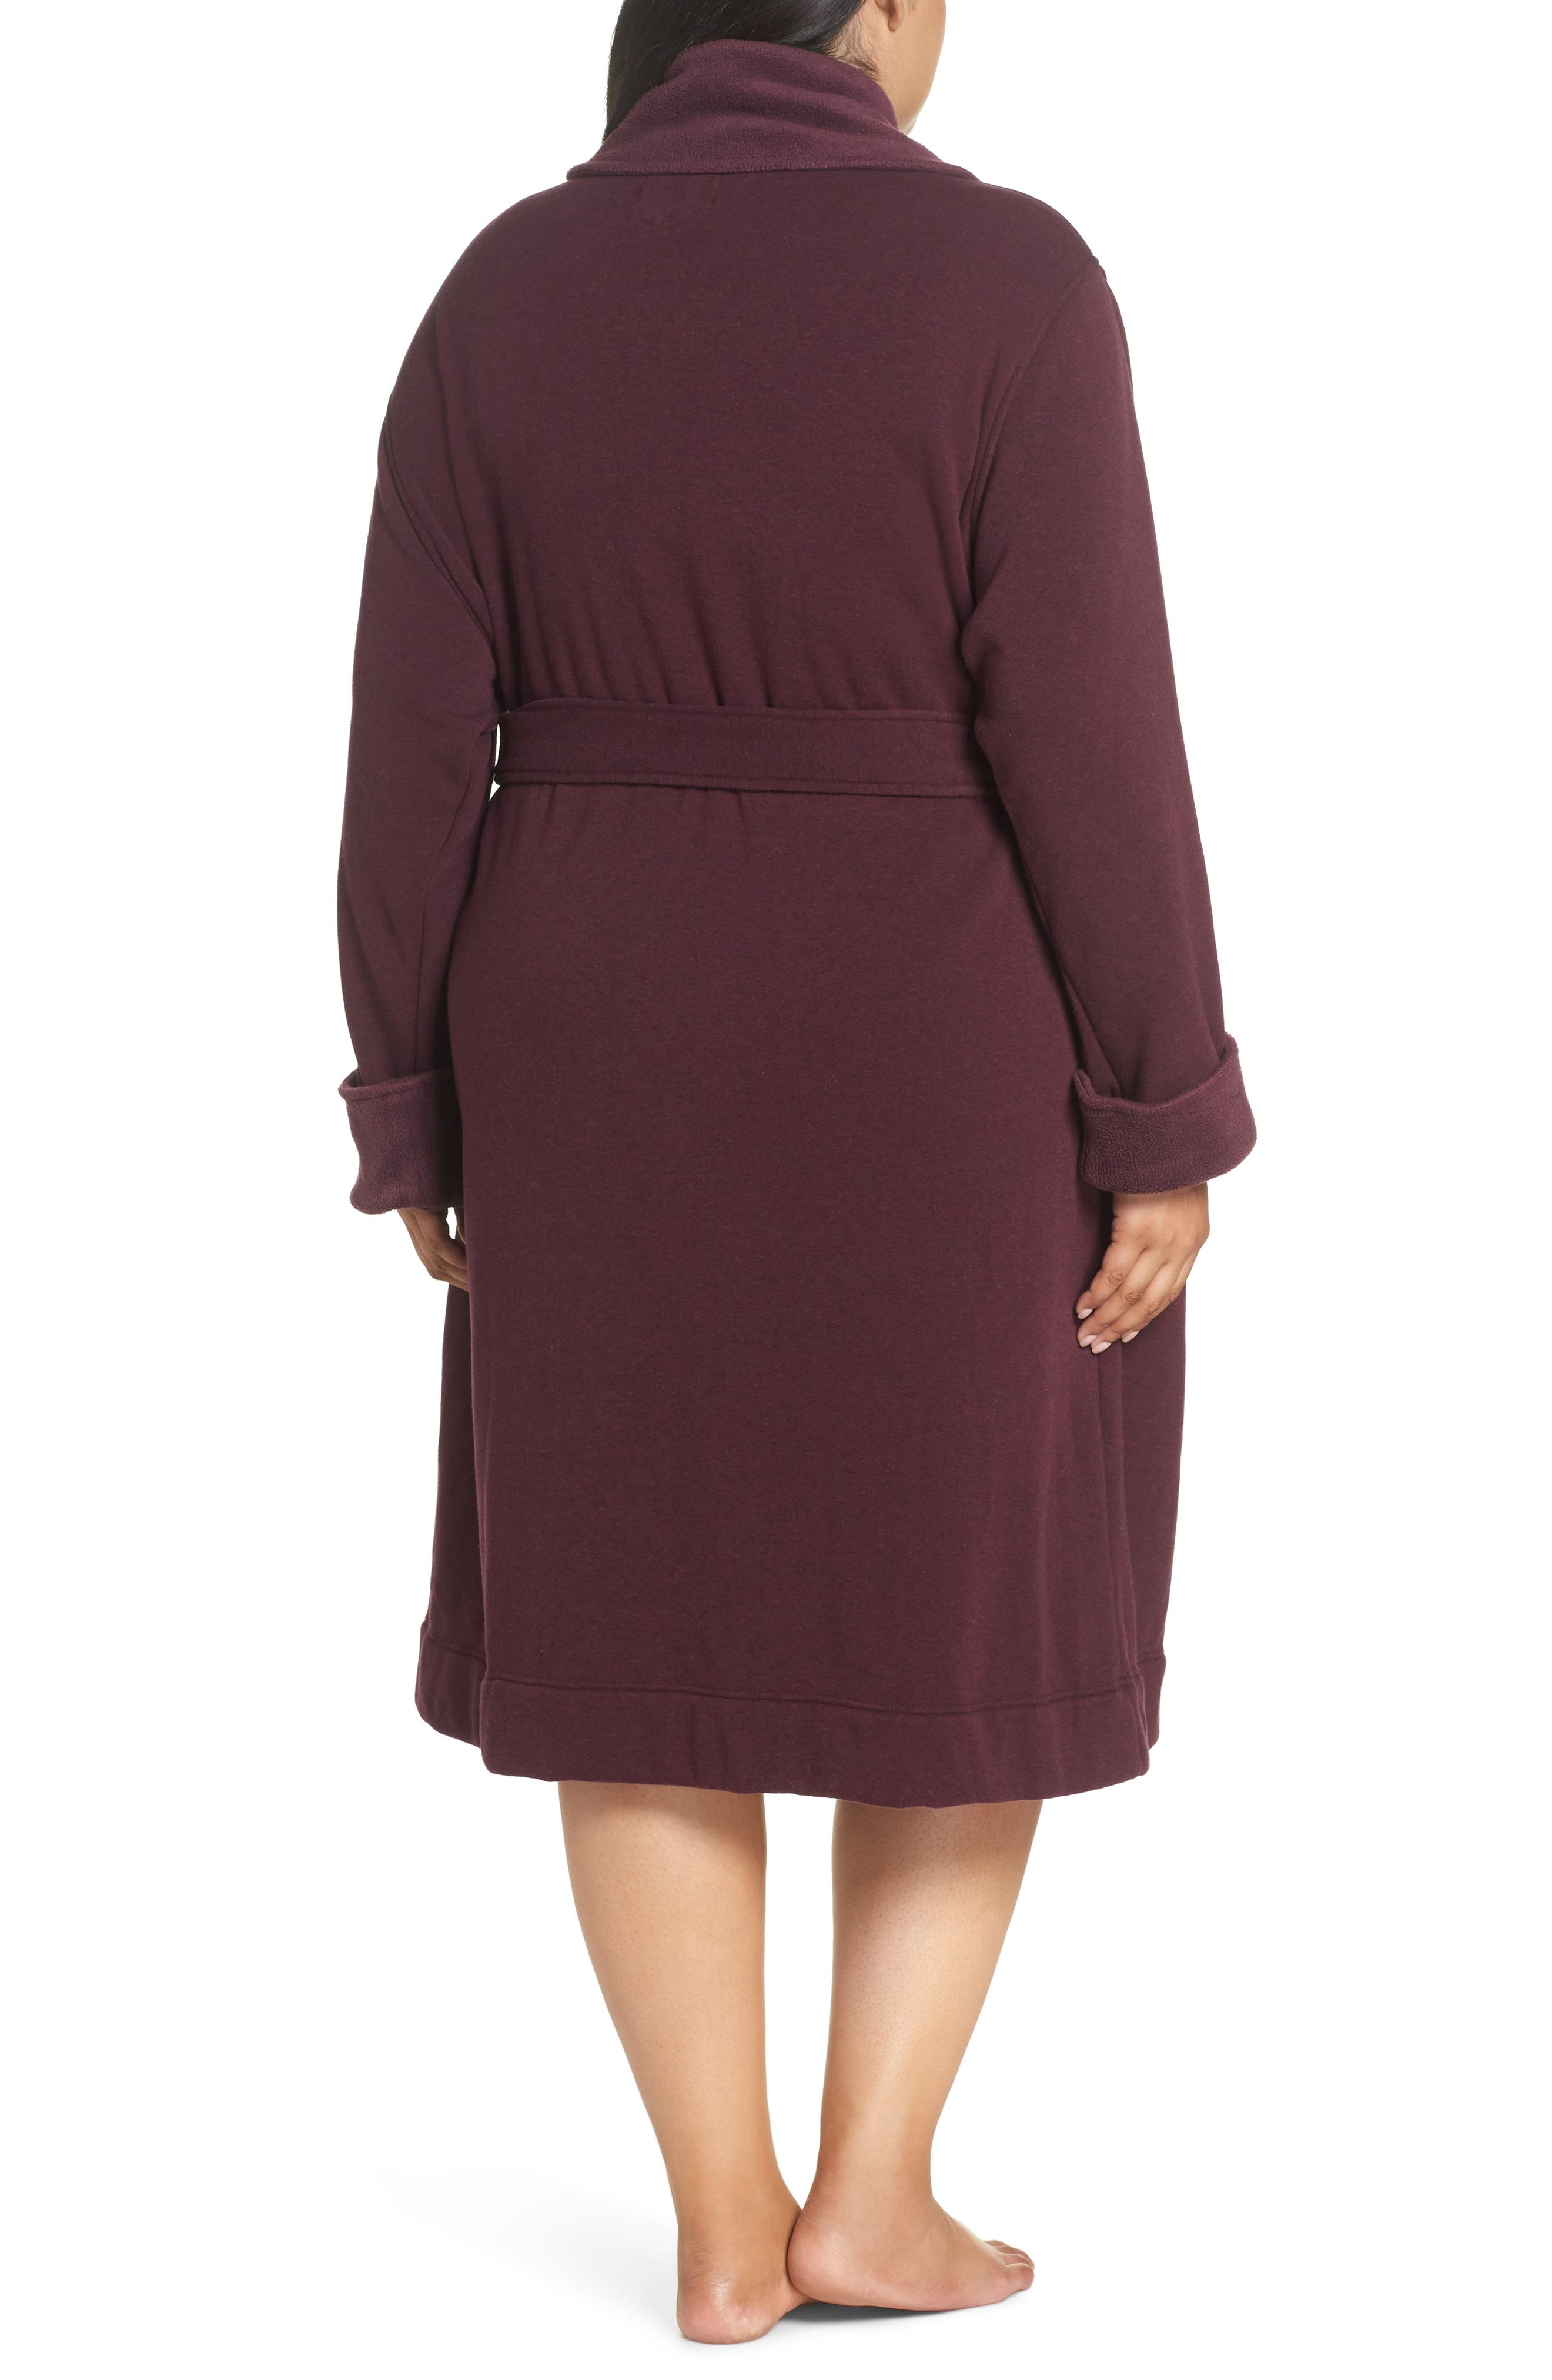 Duffield II Robe,                             Alternate thumbnail 2, color,                             PORT HEATHER